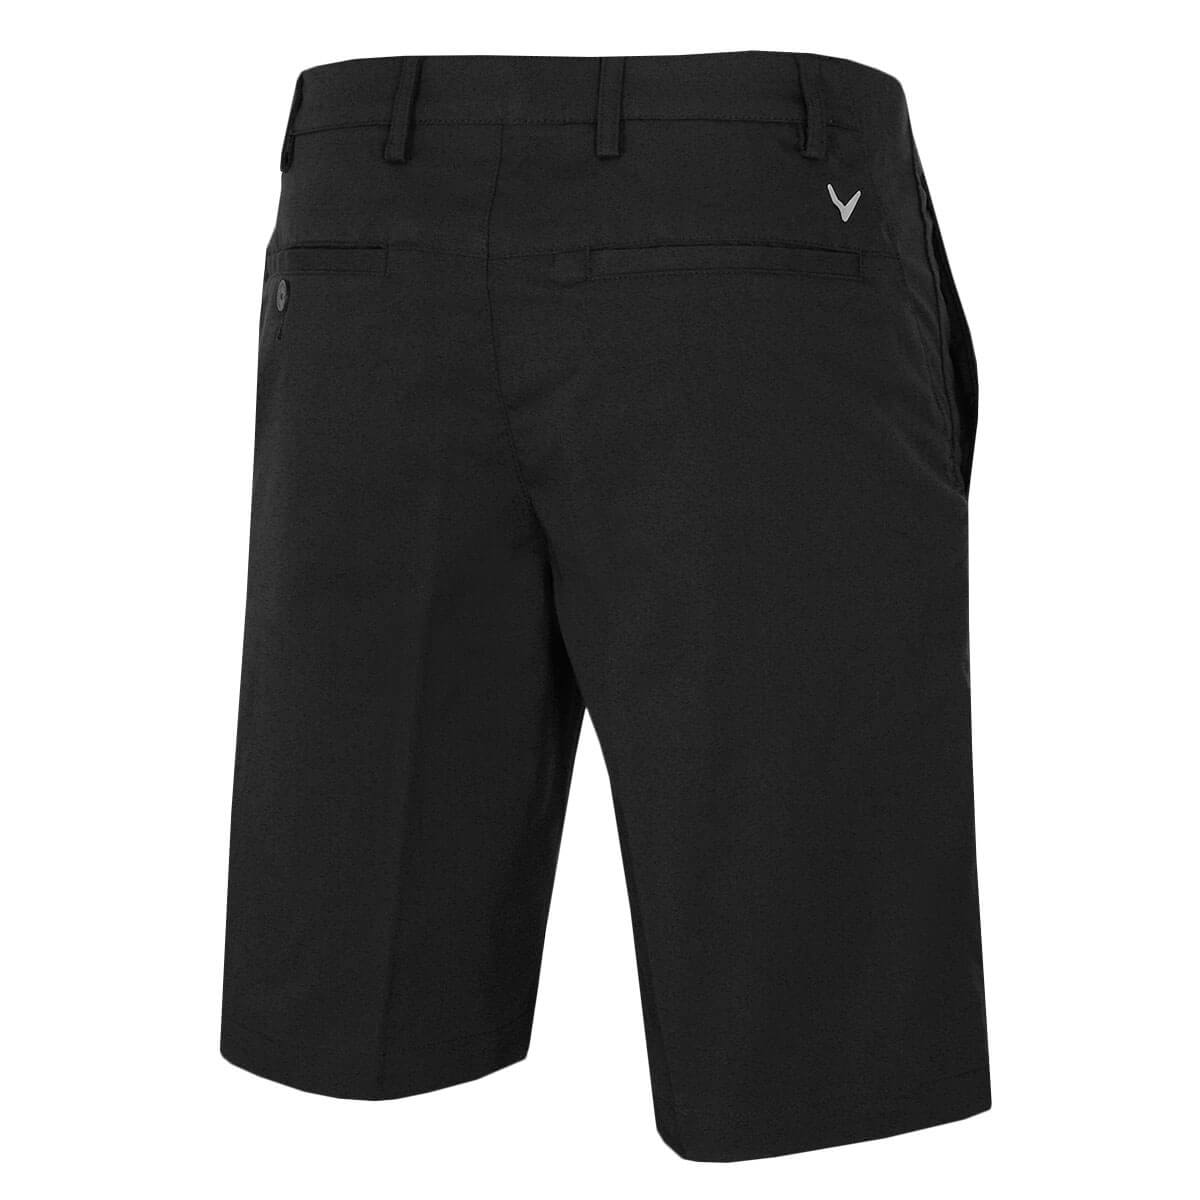 Callaway-Mens-2019-Ergo-Stretch-Golf-Slim-Fit-Tailored-Chevron-Shorts thumbnail 3